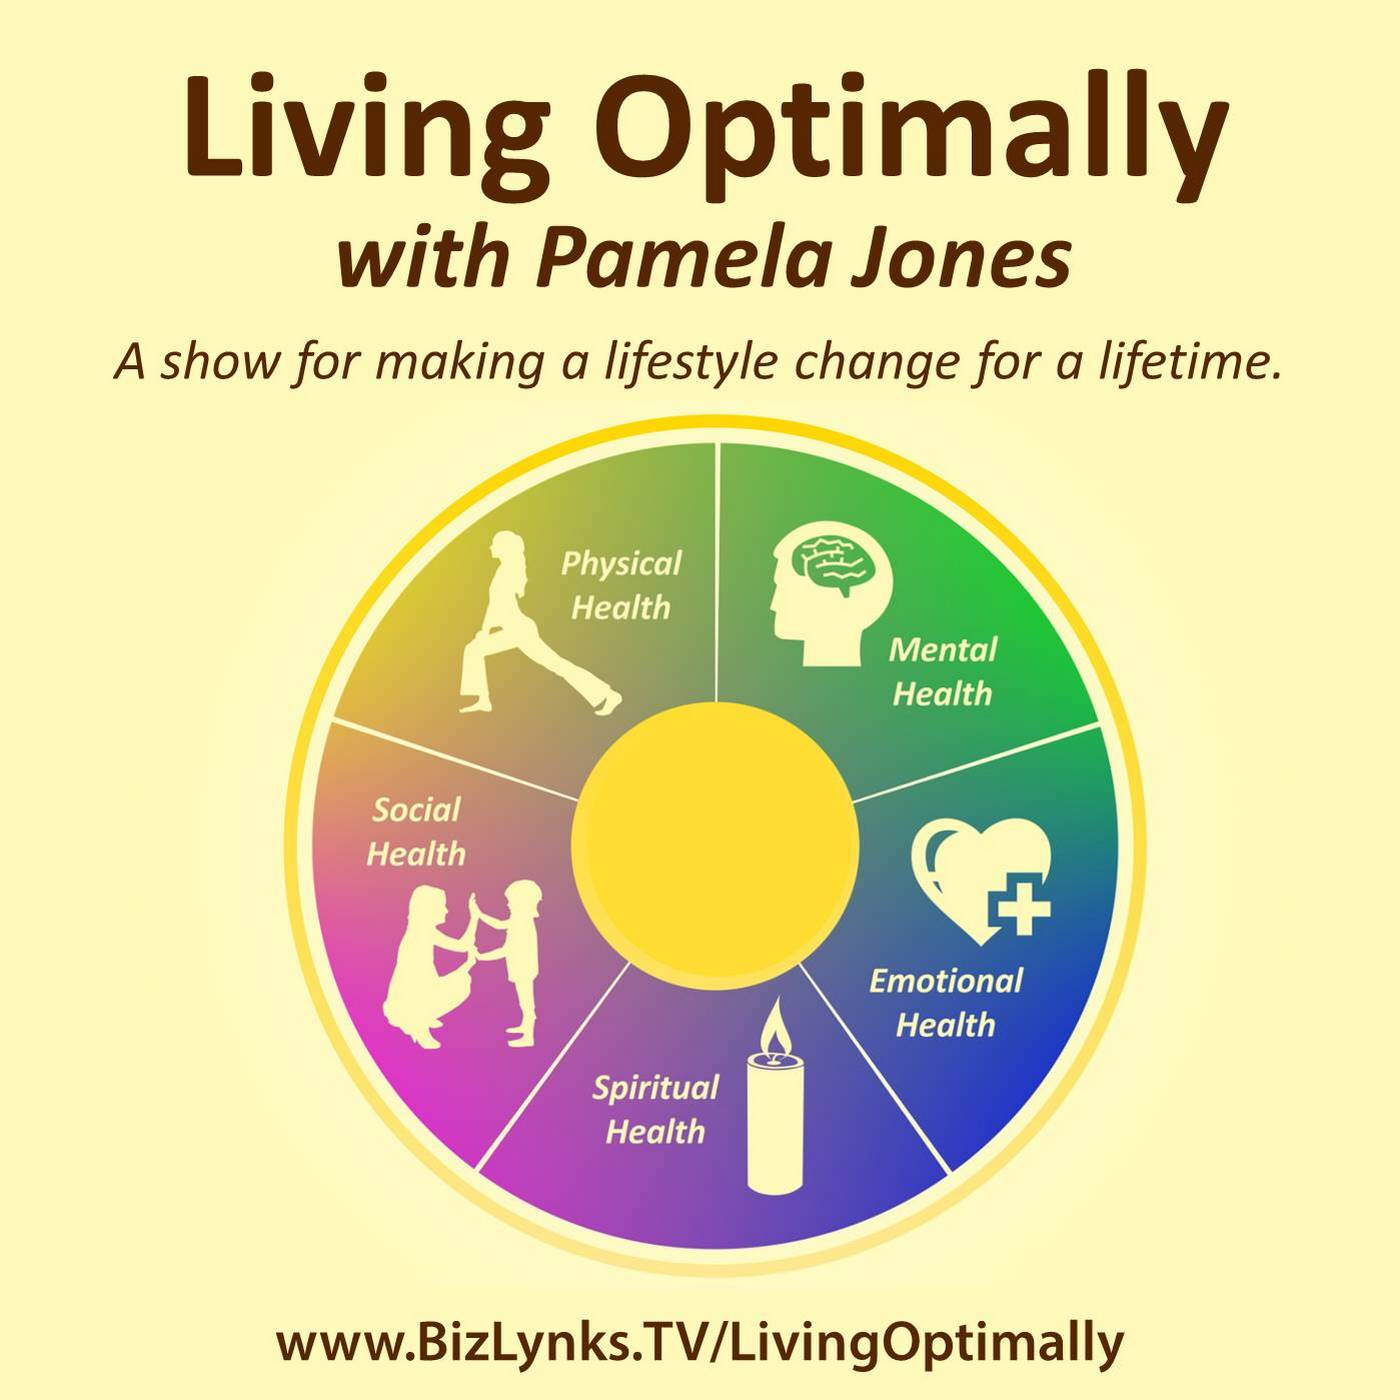 Living Optimally with Pamela Jones | BizLynks TV Network